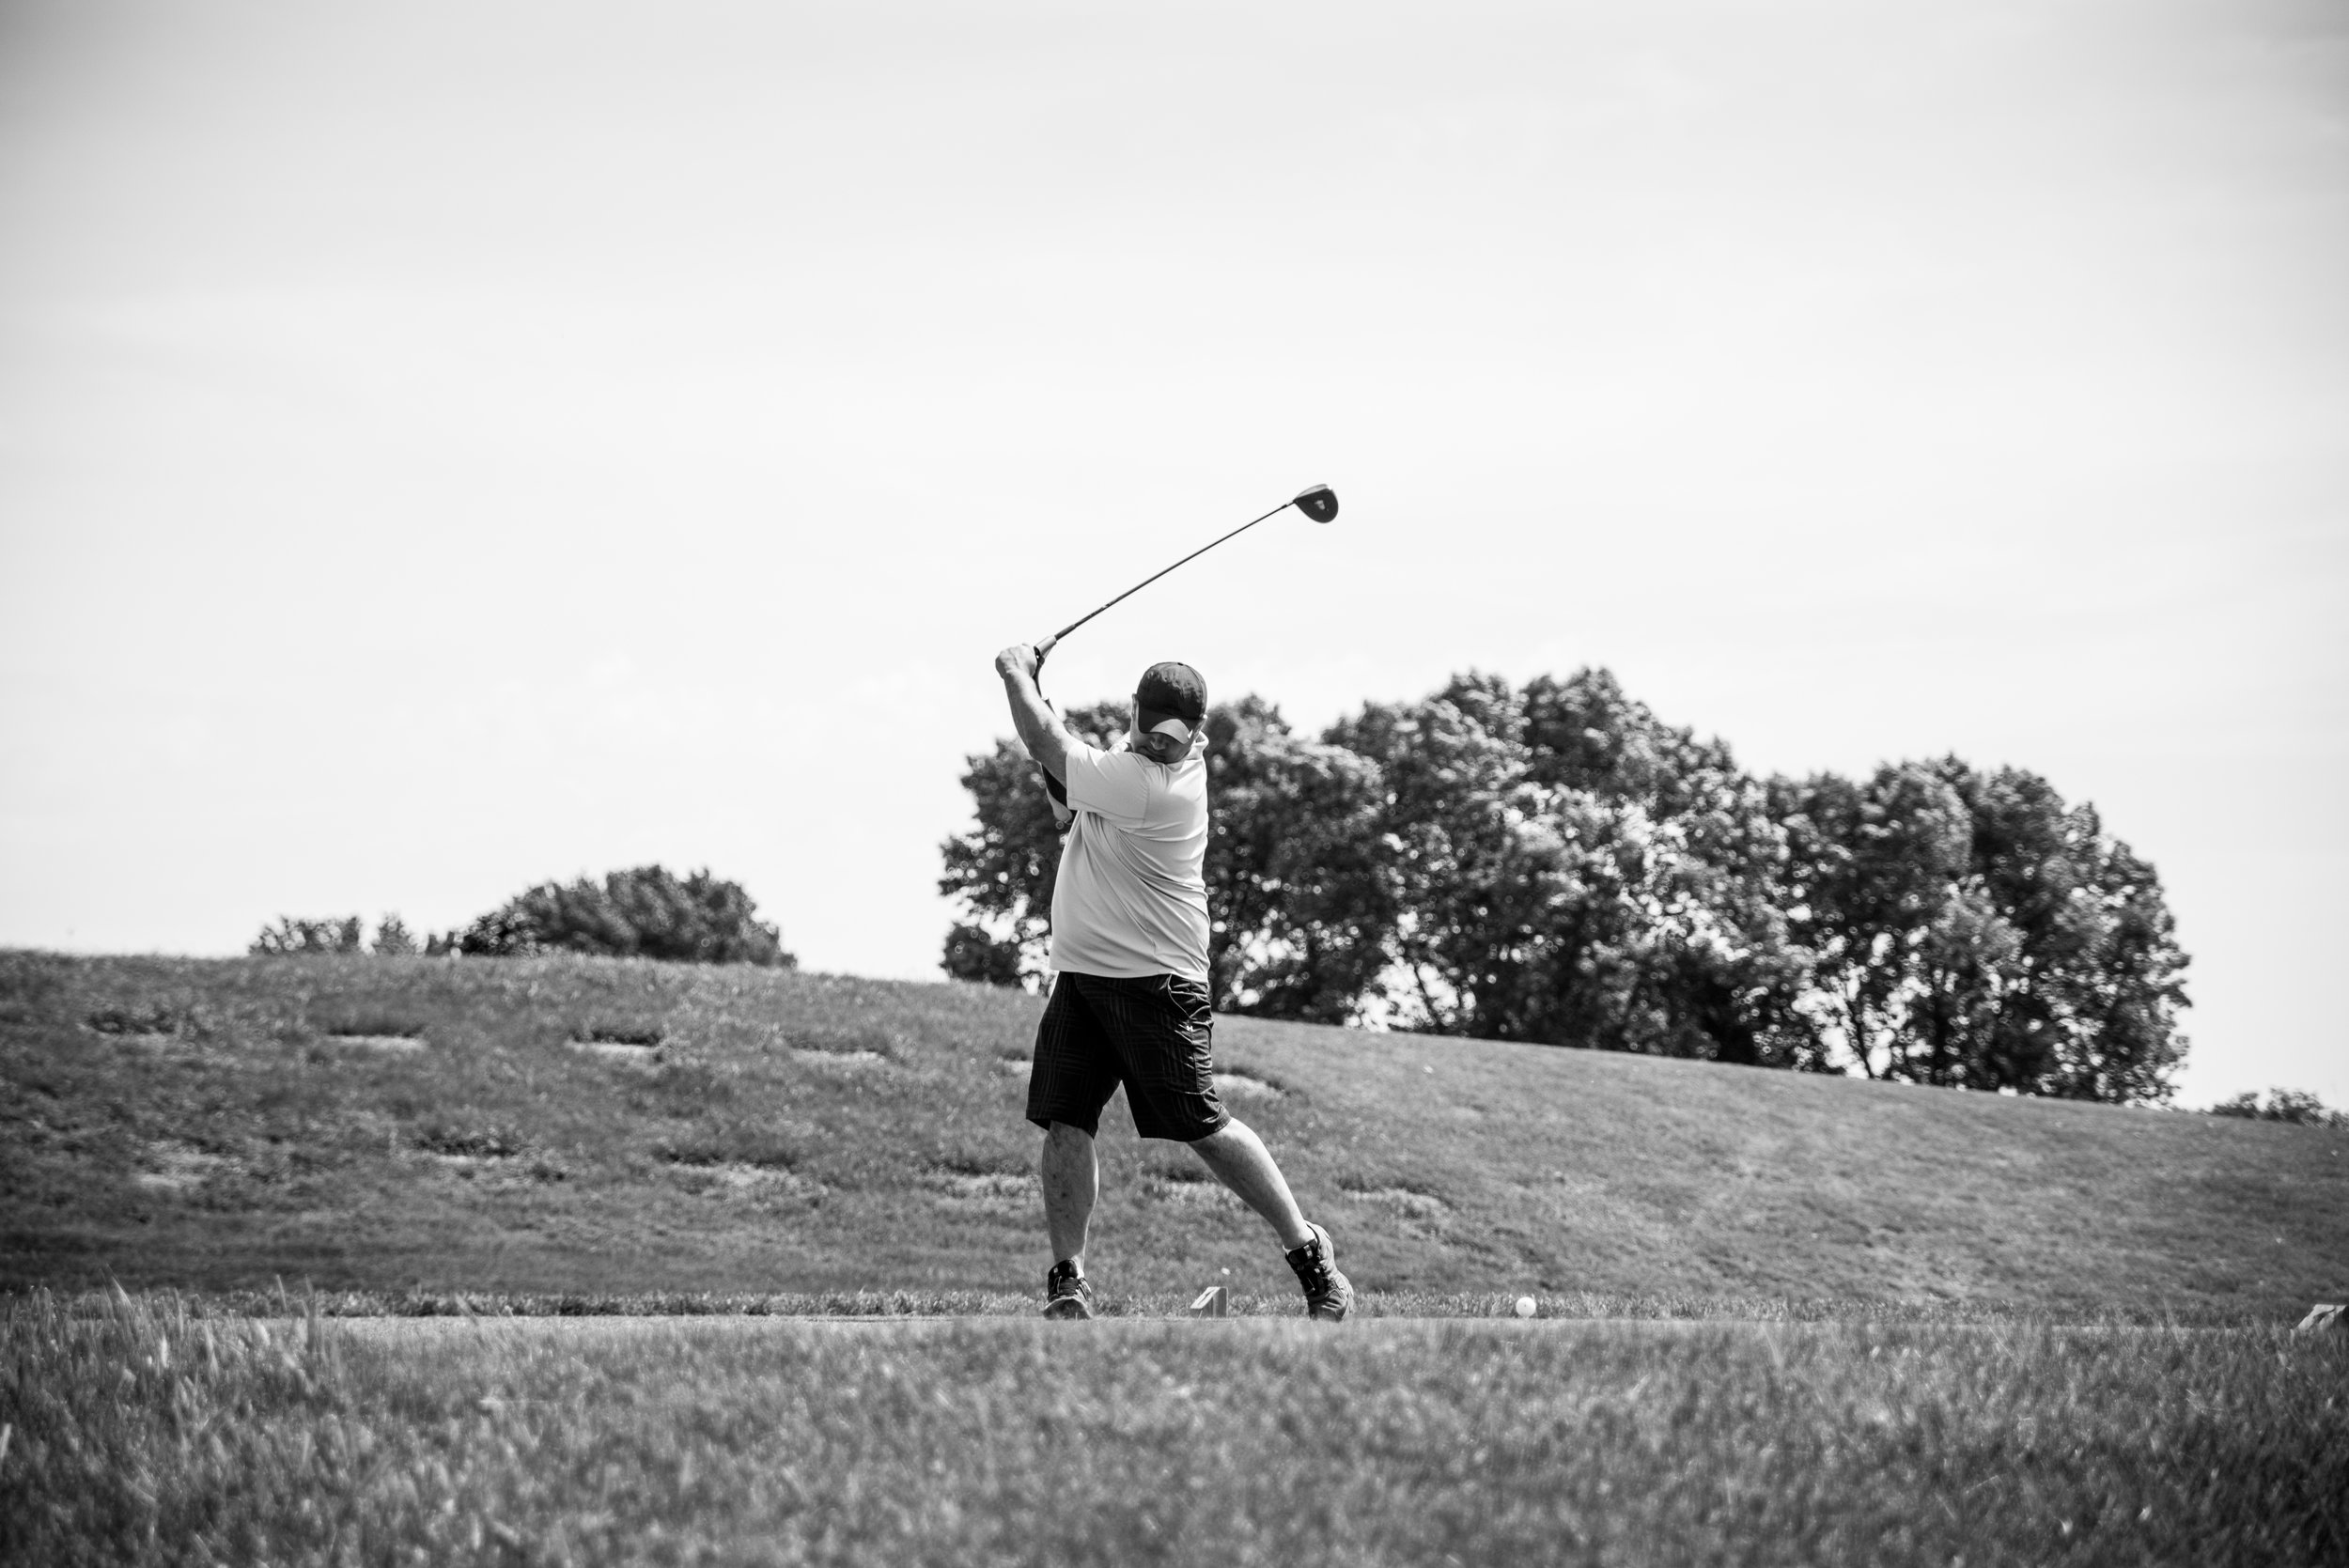 Petry takes a swing at Hazeltine, where he was supporting Warrior Rising and their initiative to help veteran funded startups.